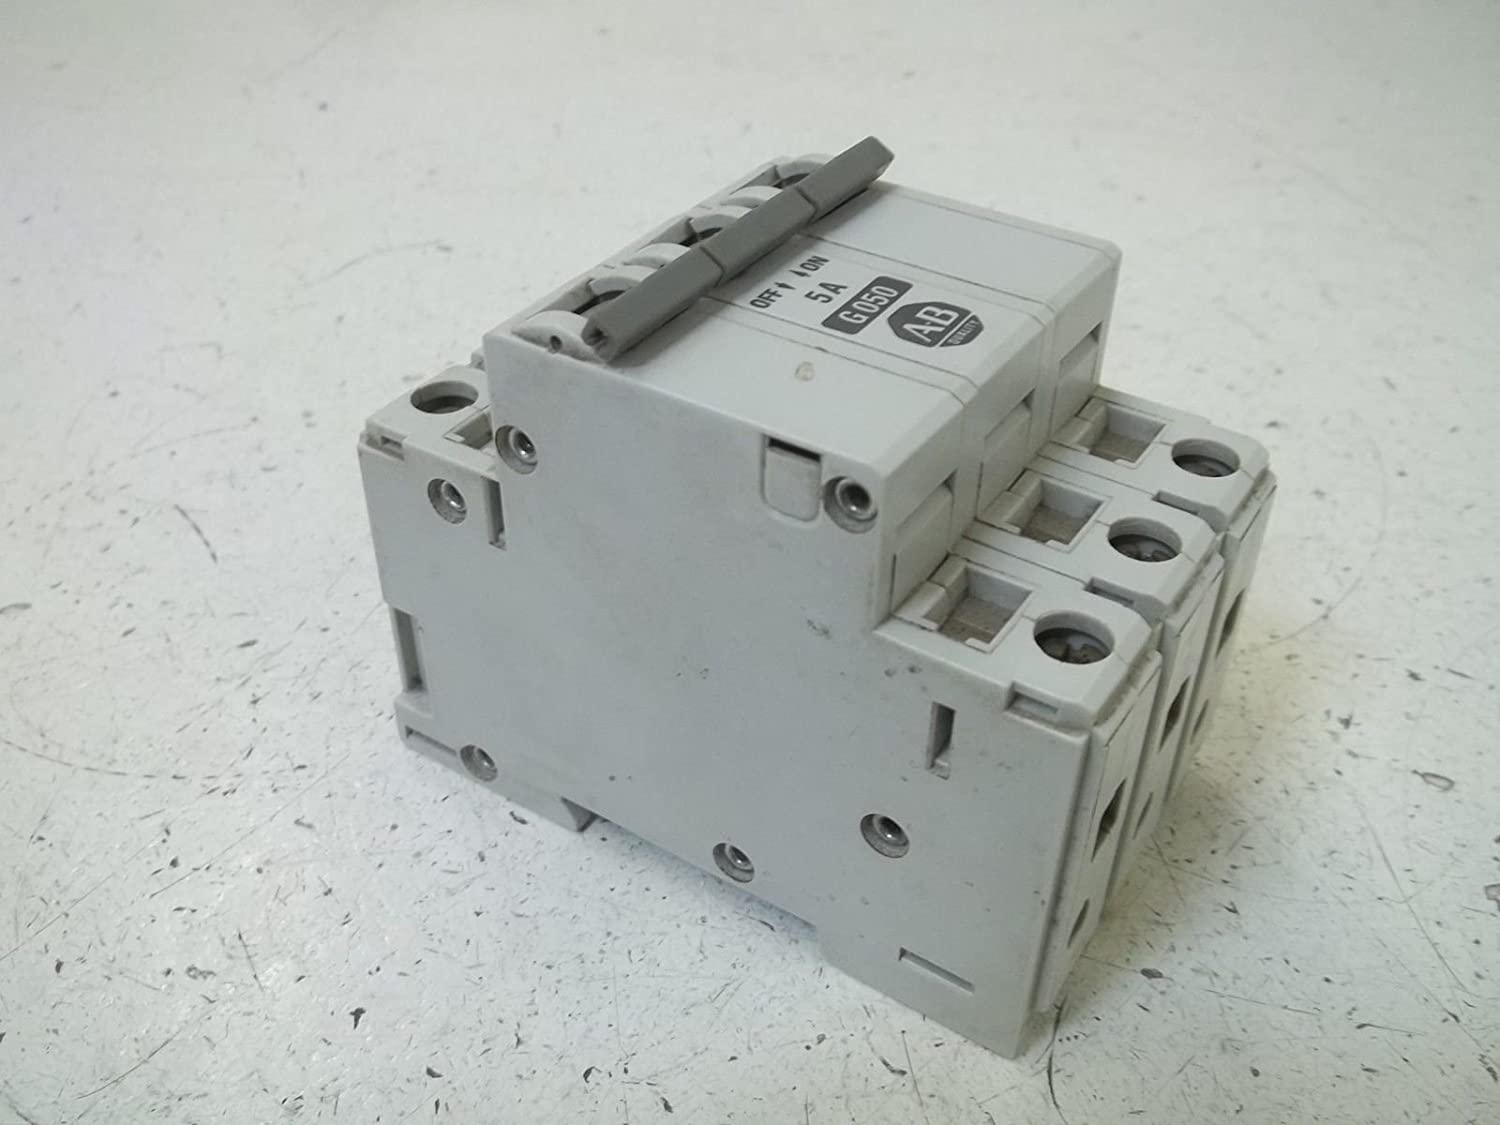 Allen Bradley 3 Pole Molded Case Circuit Breaker 1492 Cb3 G050 5a Cutler Hammer Gfci 2 20amp Gfcb220 Industrial Scientific